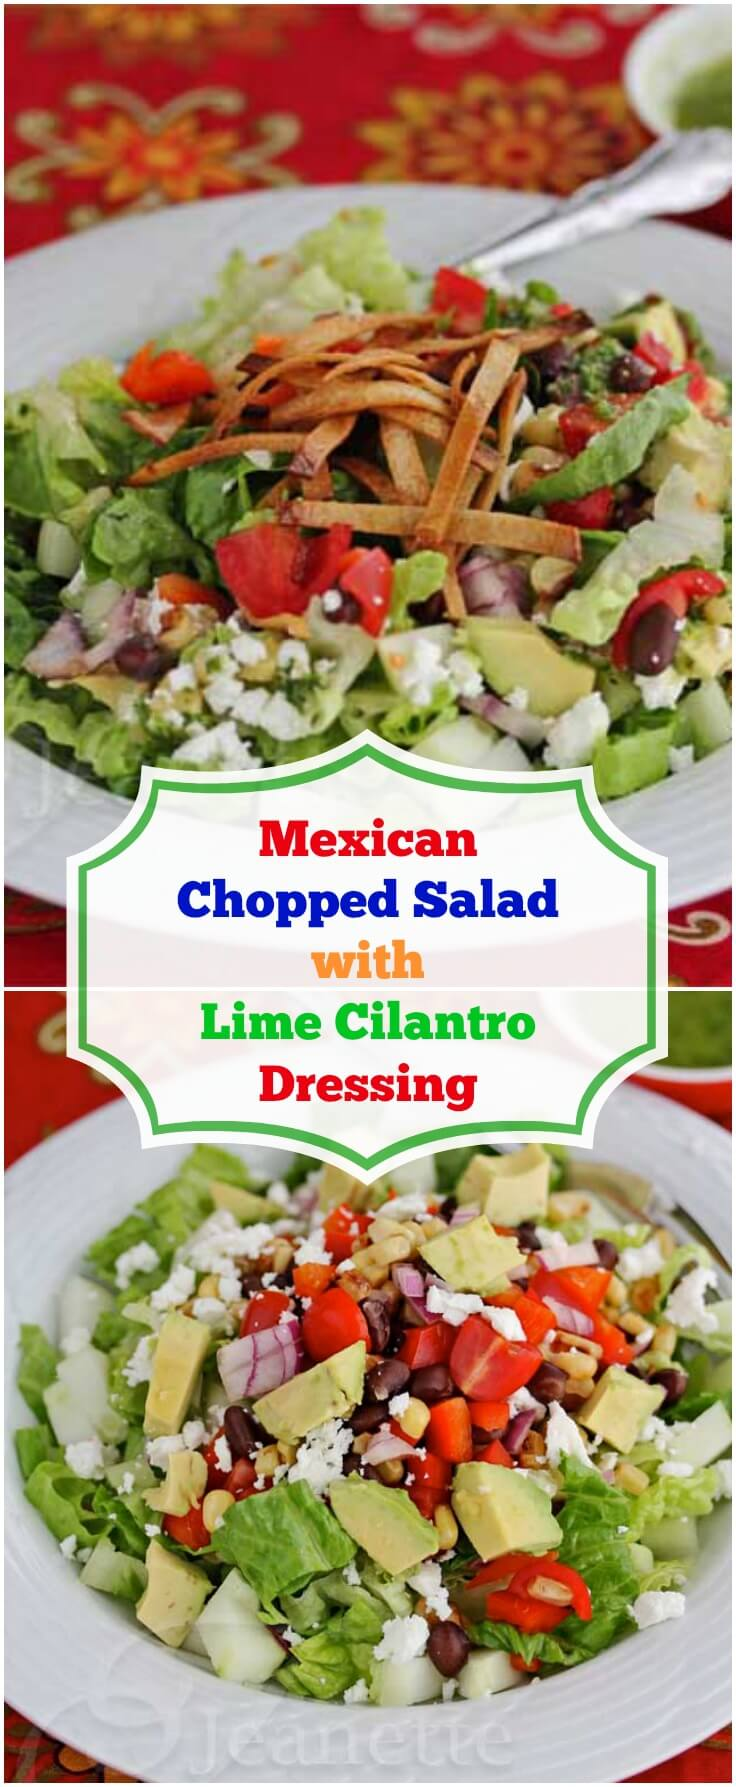 chopped salad beet green chopped salad mexican chopped salad with